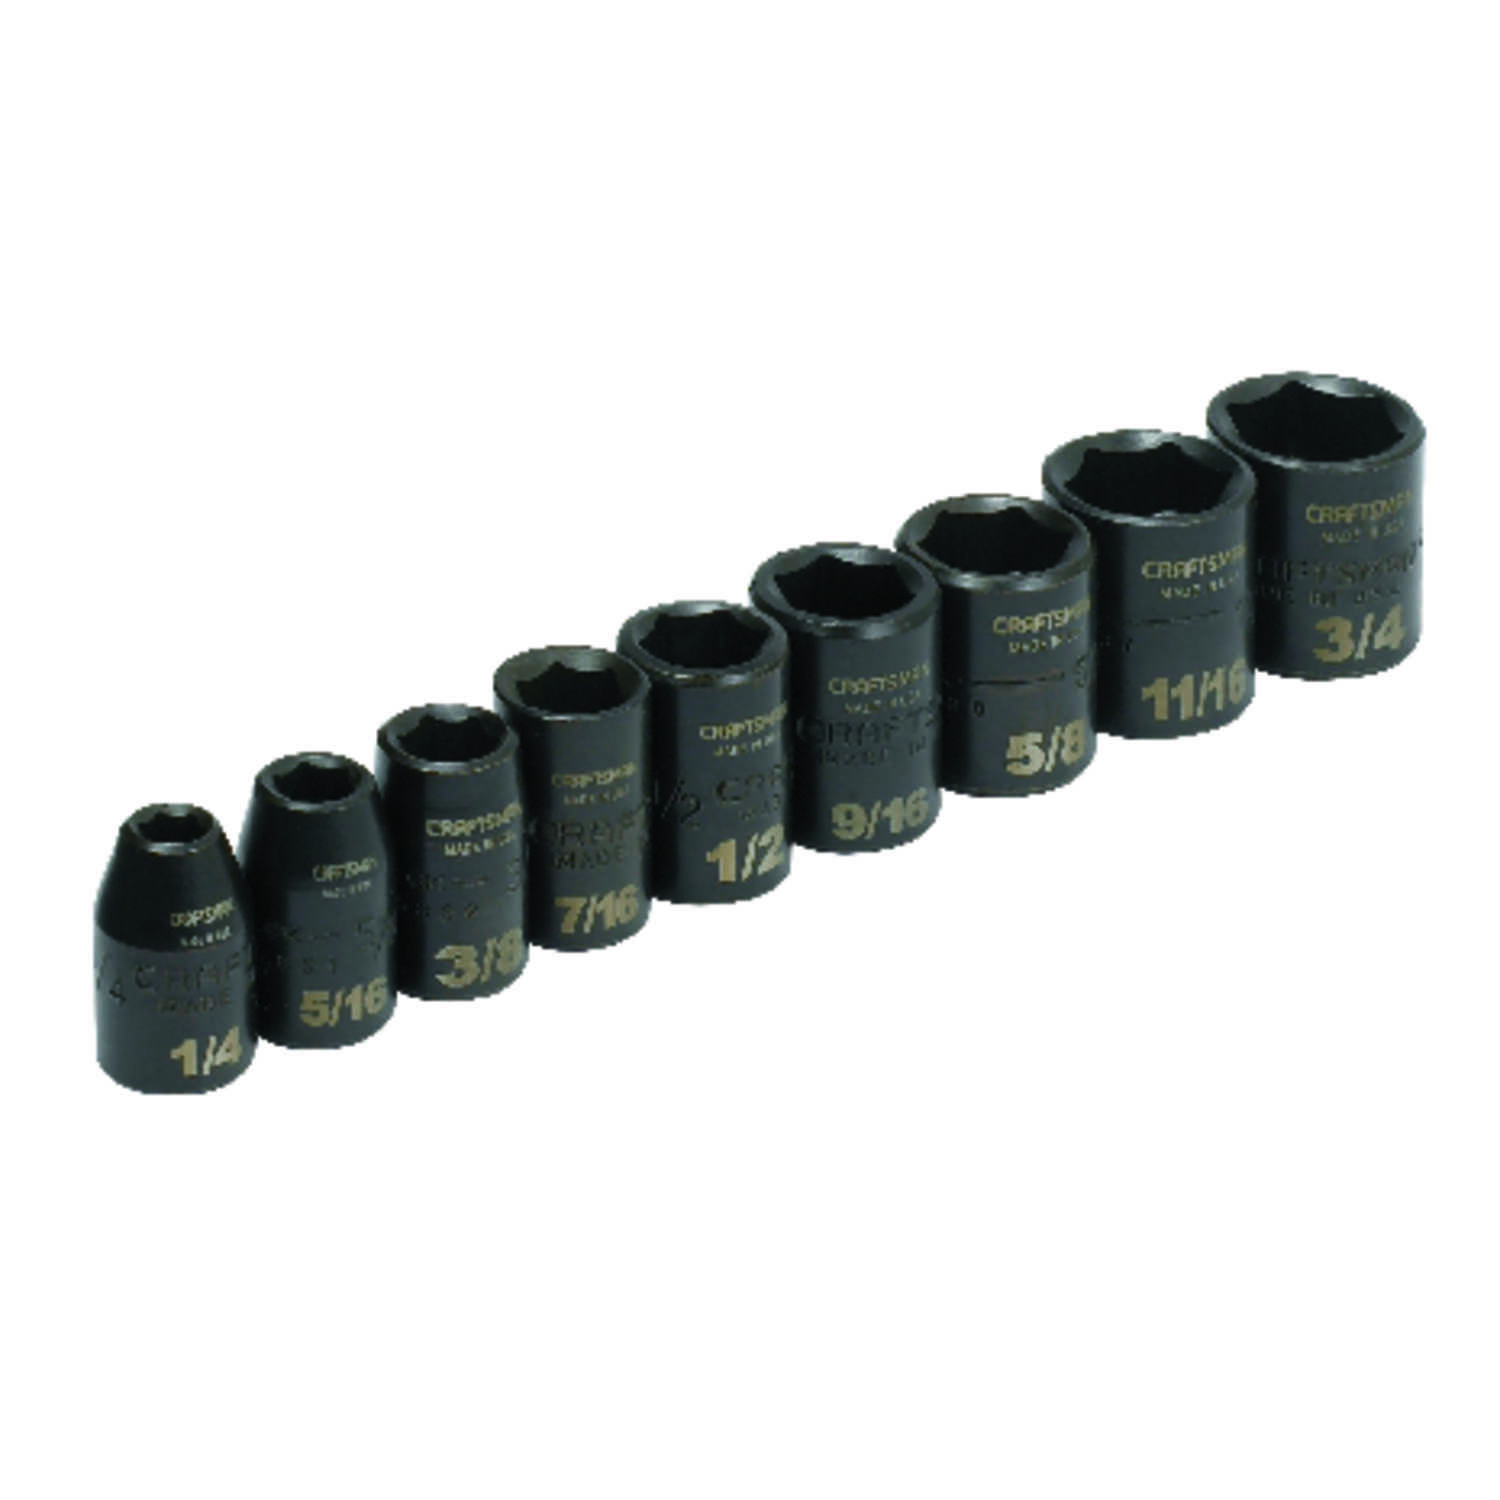 Craftsman  1/4 in.  x 3/8 in. drive  SAE  6 Point Socket Set  9 pc.